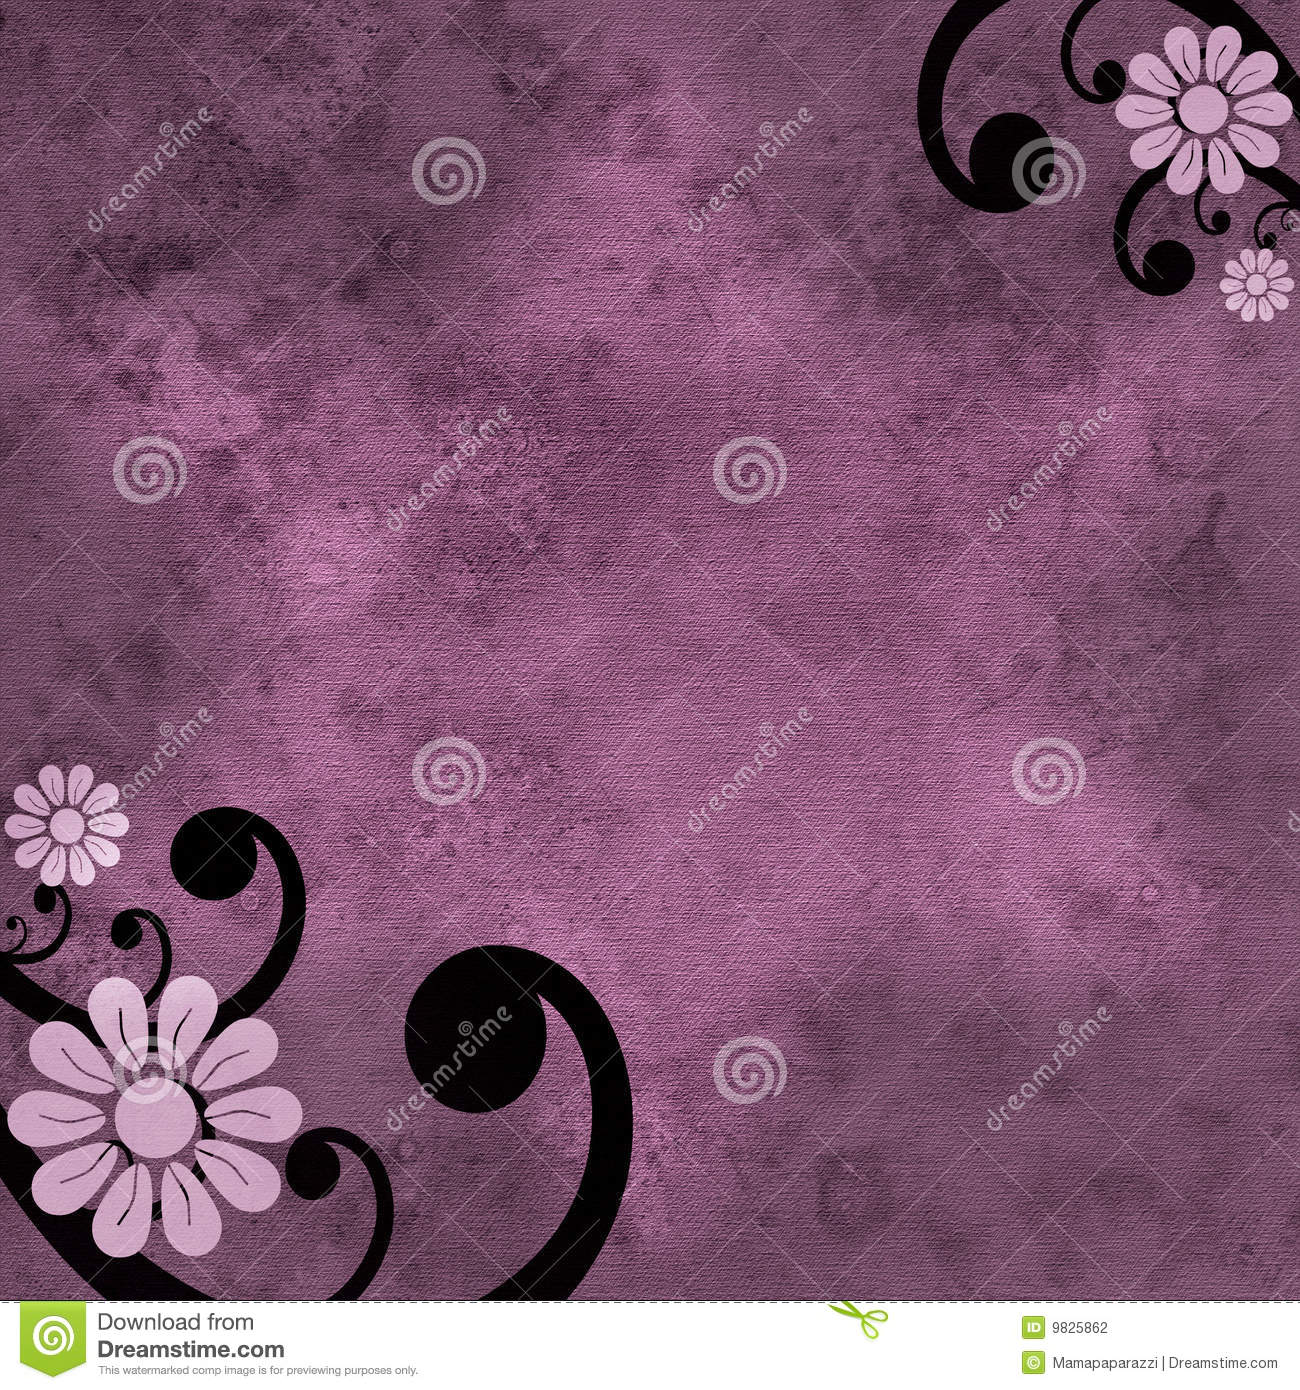 purple swirl background stock - photo #11